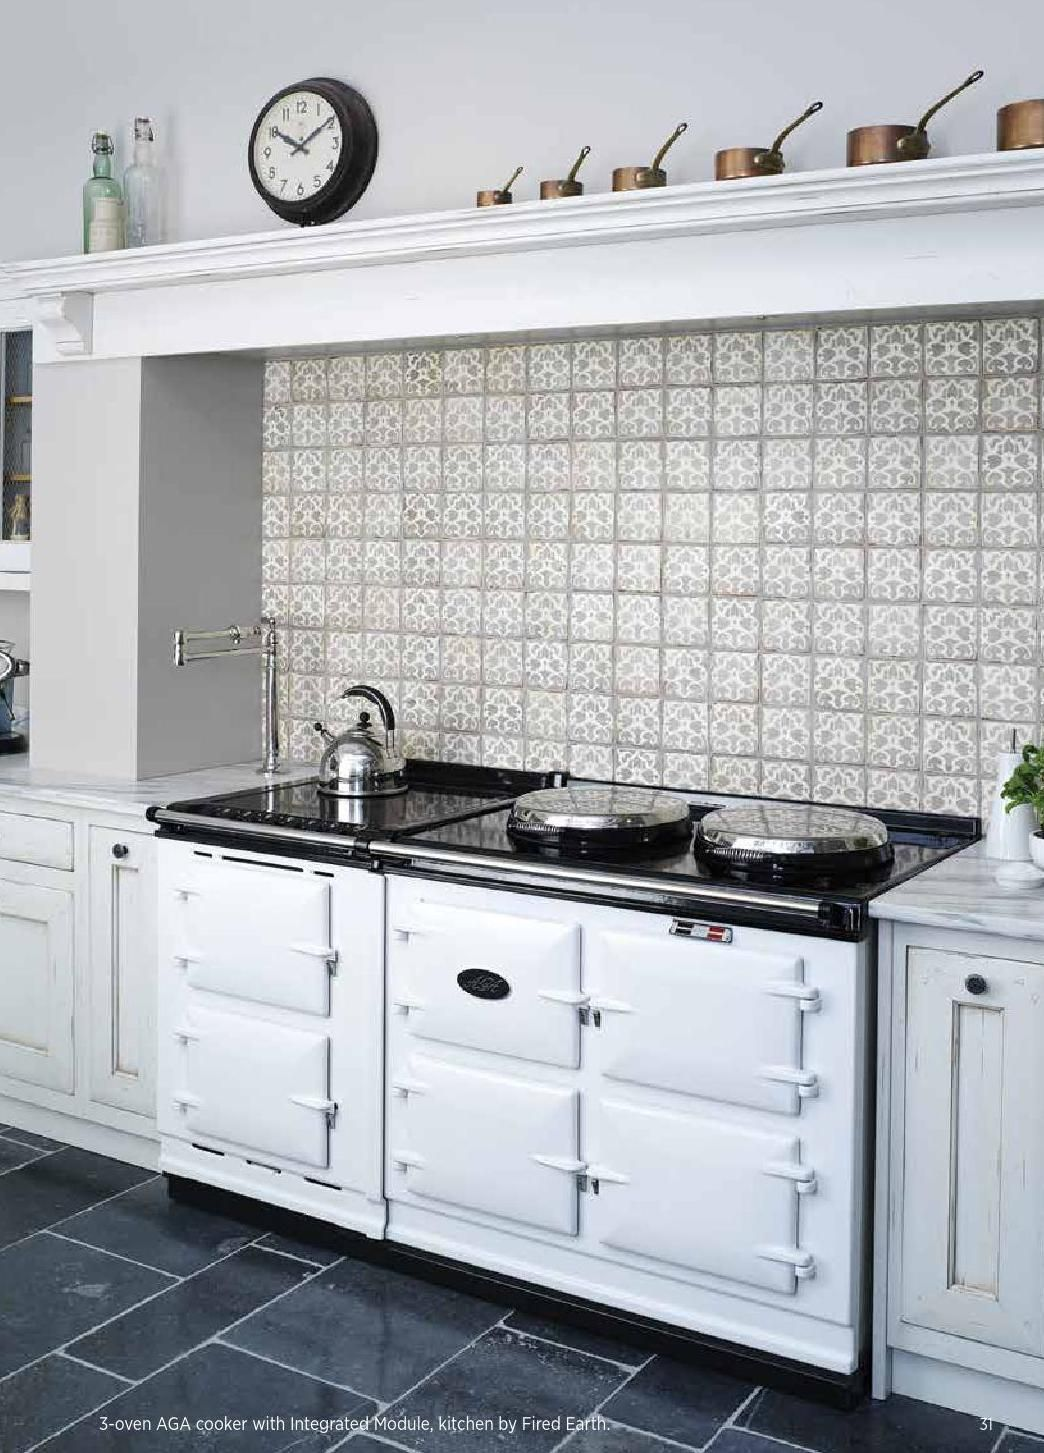 AGA Brochure 2014 | Pinterest | Aga, Rayburn cookers and Stoves cookers